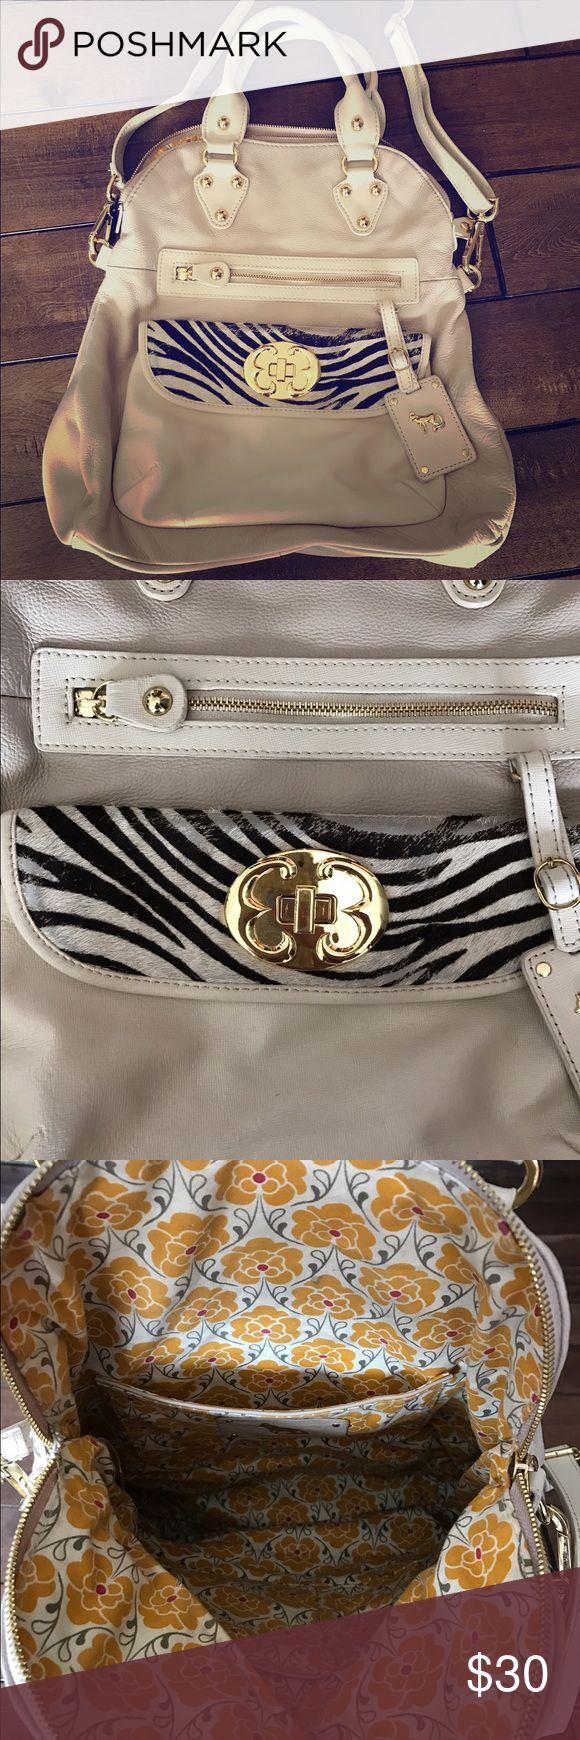 """Emma Fox cream leather bag with zebra fur Emma fox tan/cream leather bag with zebra fur on pocket.  Adjustable shoulder/cross body strap, or can hand carry. Large size - approx 17""""x15""""x4"""". Does have wear on zebra fur but it's not very noticeable (see pic), also some wear on handles.  Clean inside. Emma Fox Bags"""